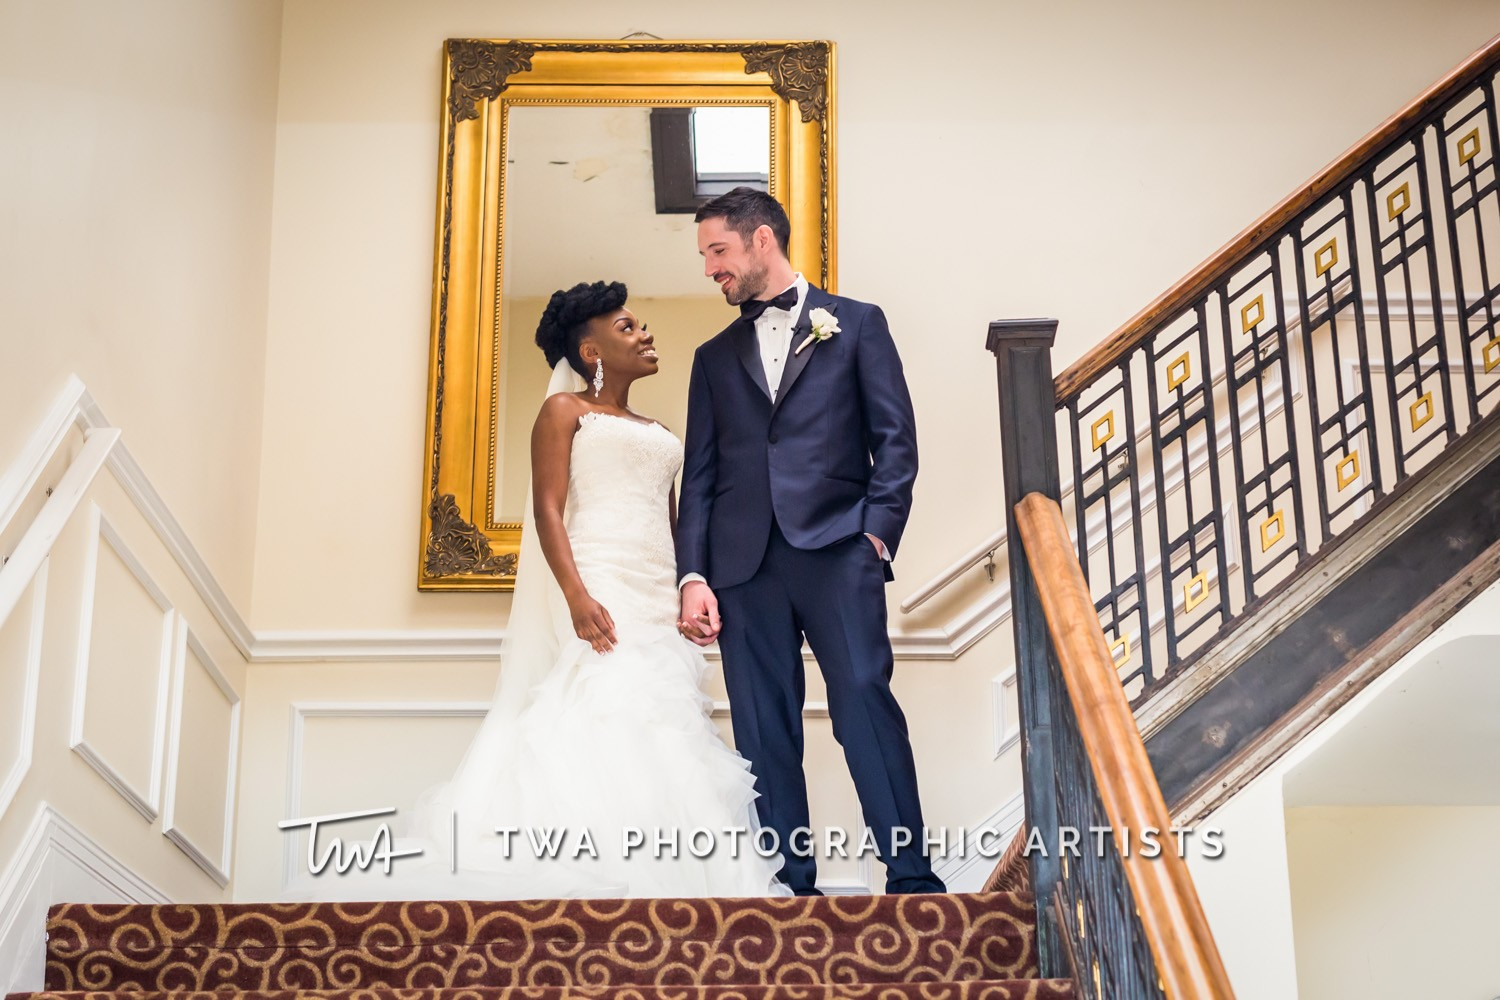 Chicago-Wedding-Photographer-TWA-Photographic-Artists-Stan-Mansion_Ityavyar_Oakley_MJ-0157-1